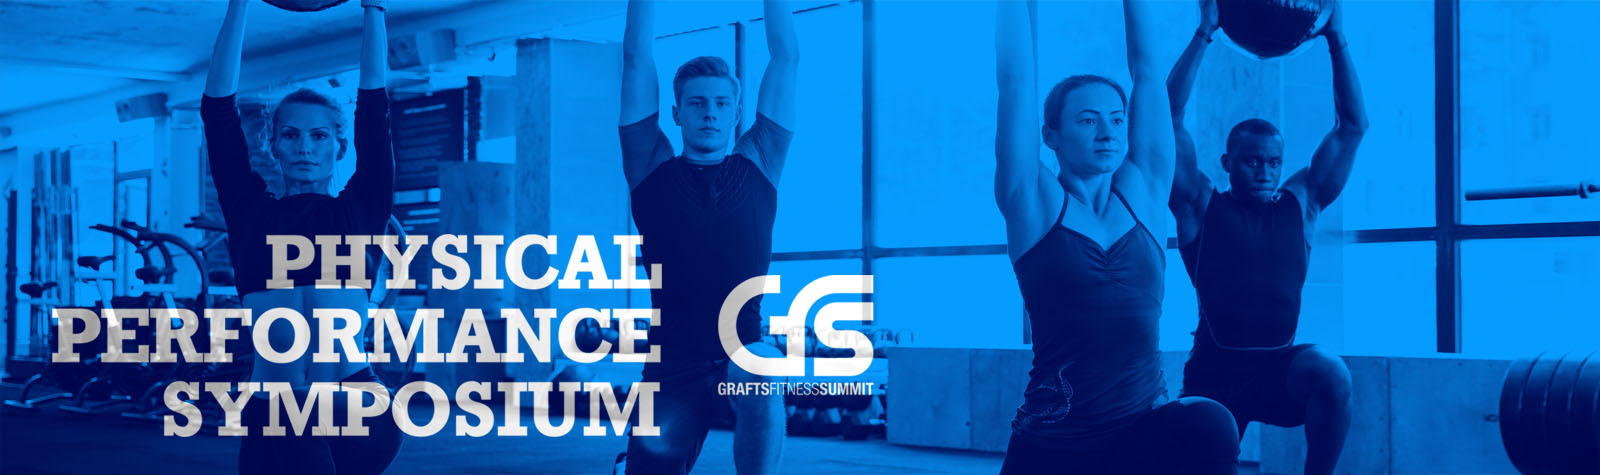 6th GFS 2018 - Physical Performance Symposium banner